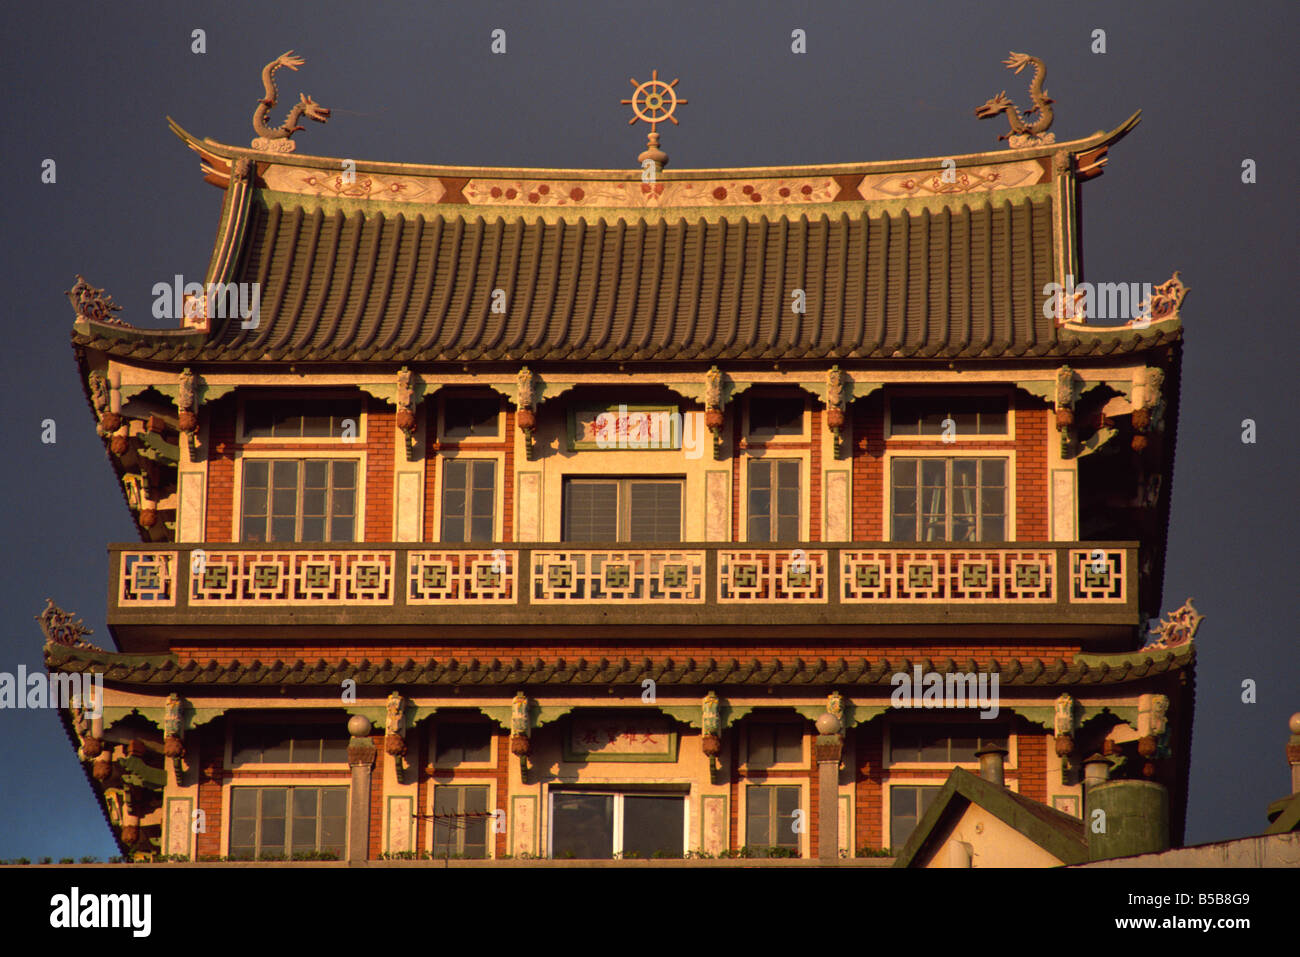 Chinese Temple, Baguio, North Luzon, Philippines, Southeast Asia - Stock Image